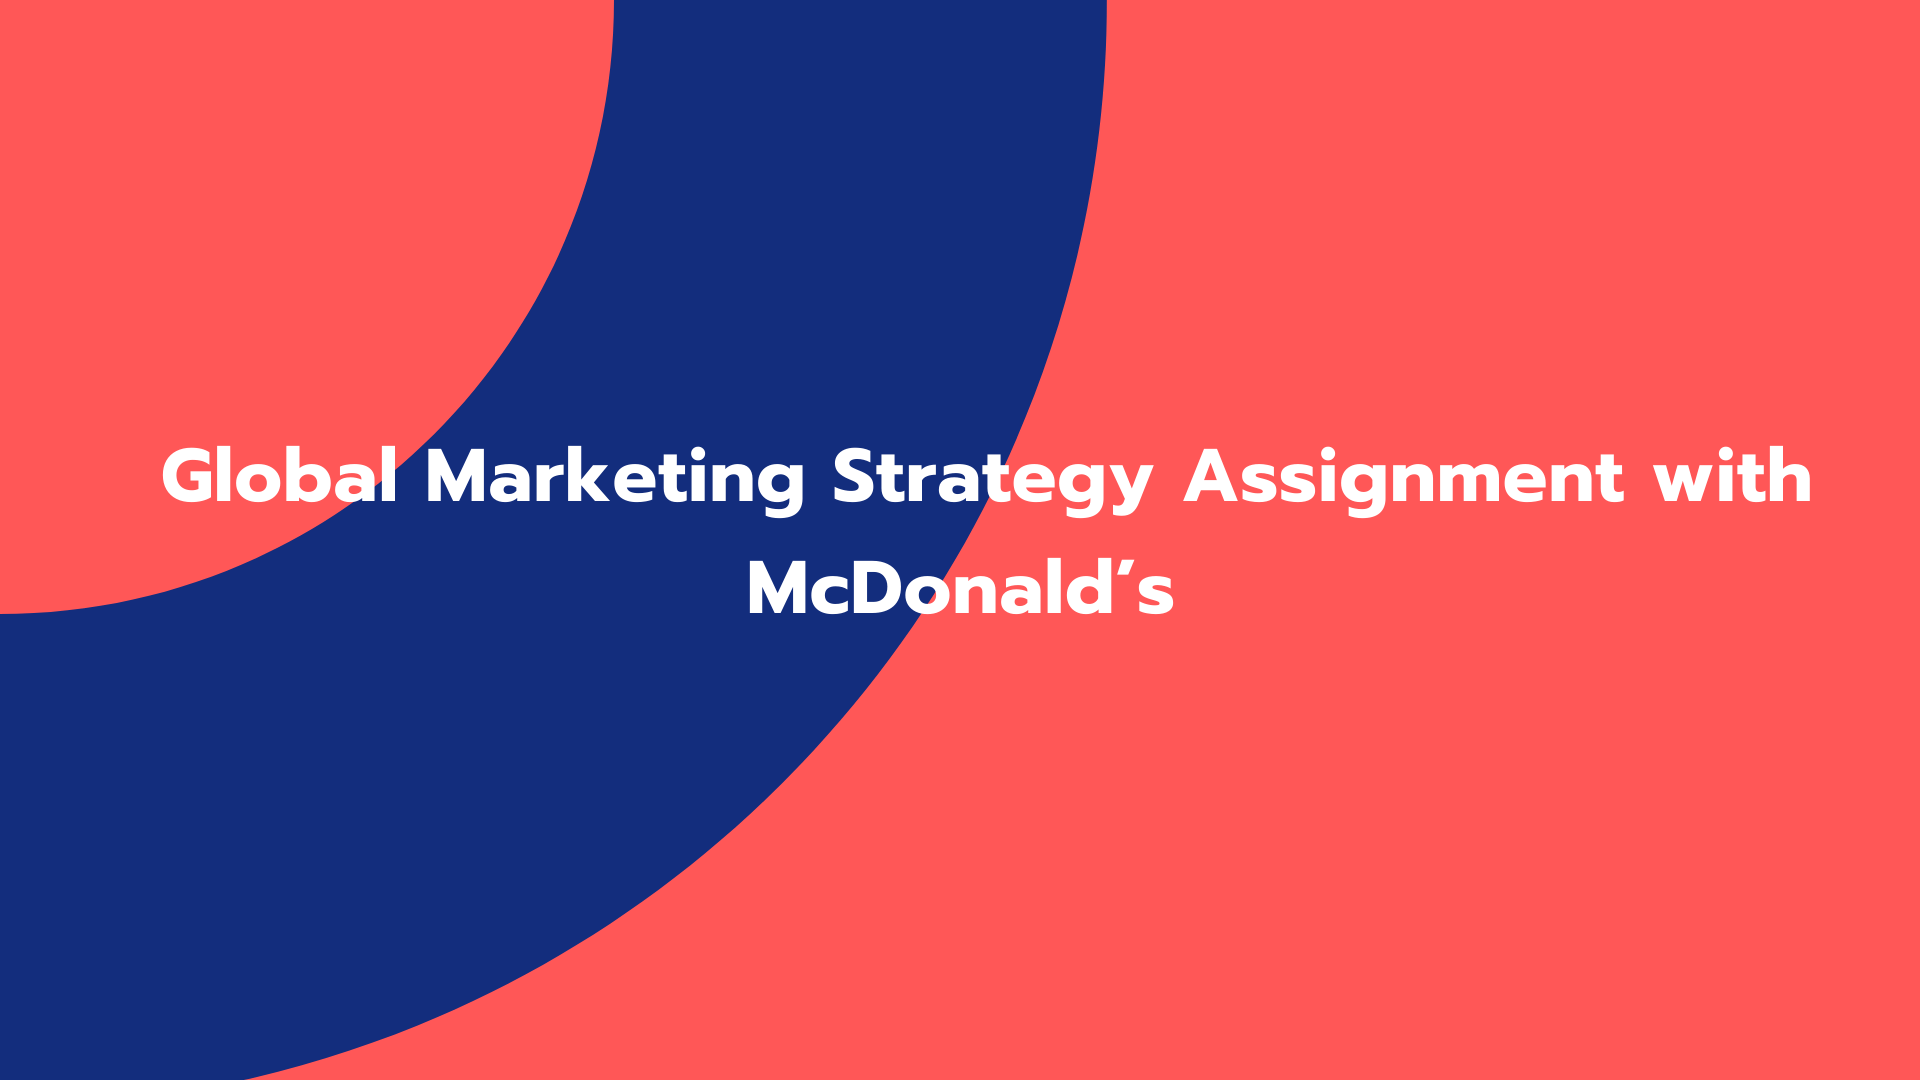 Global Marketing Strategy Assignment